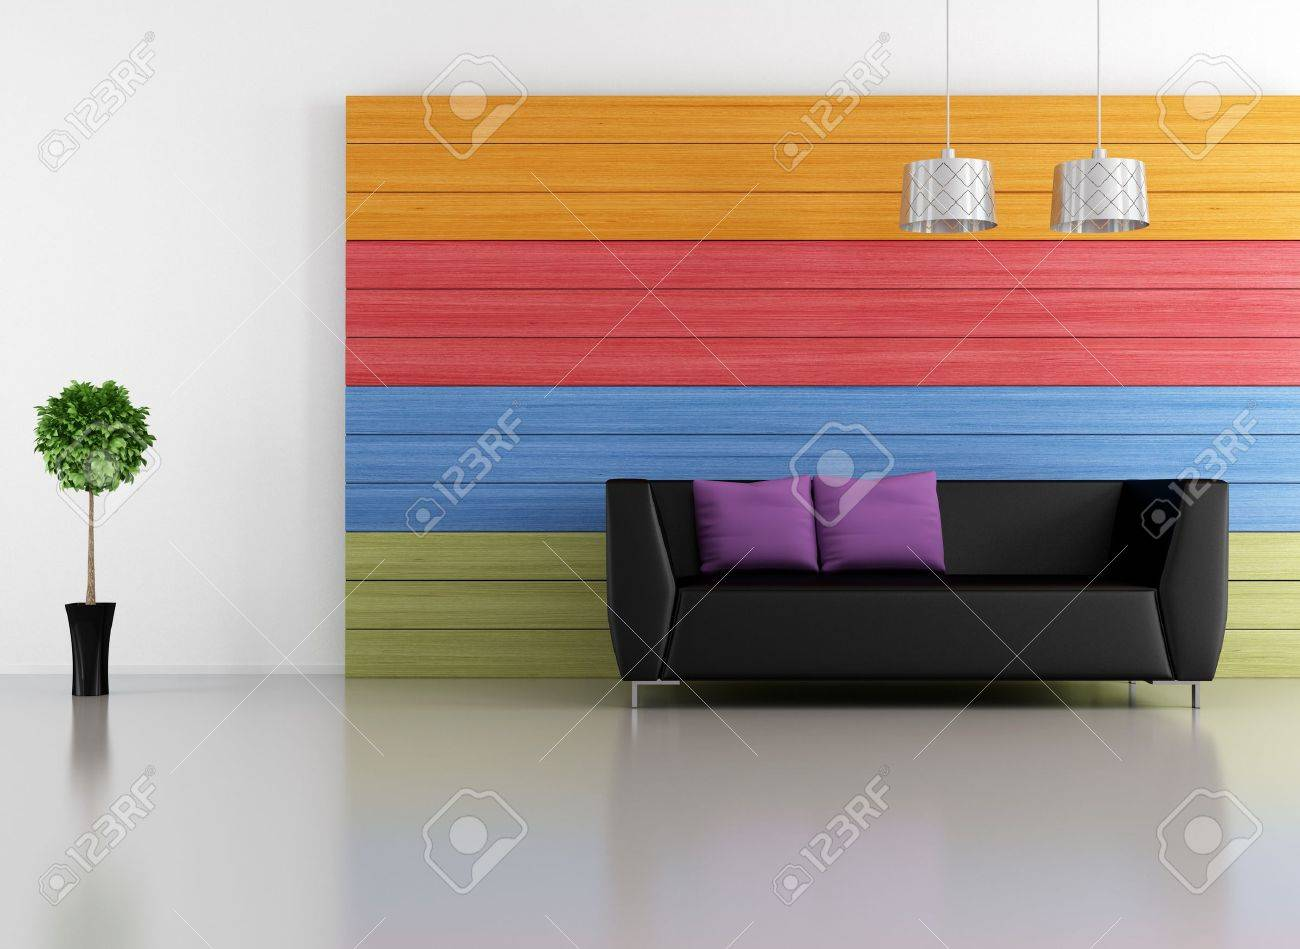 black couch in a minimalist living room with colorful wooden  panel - rendering Stock Photo - 17671064